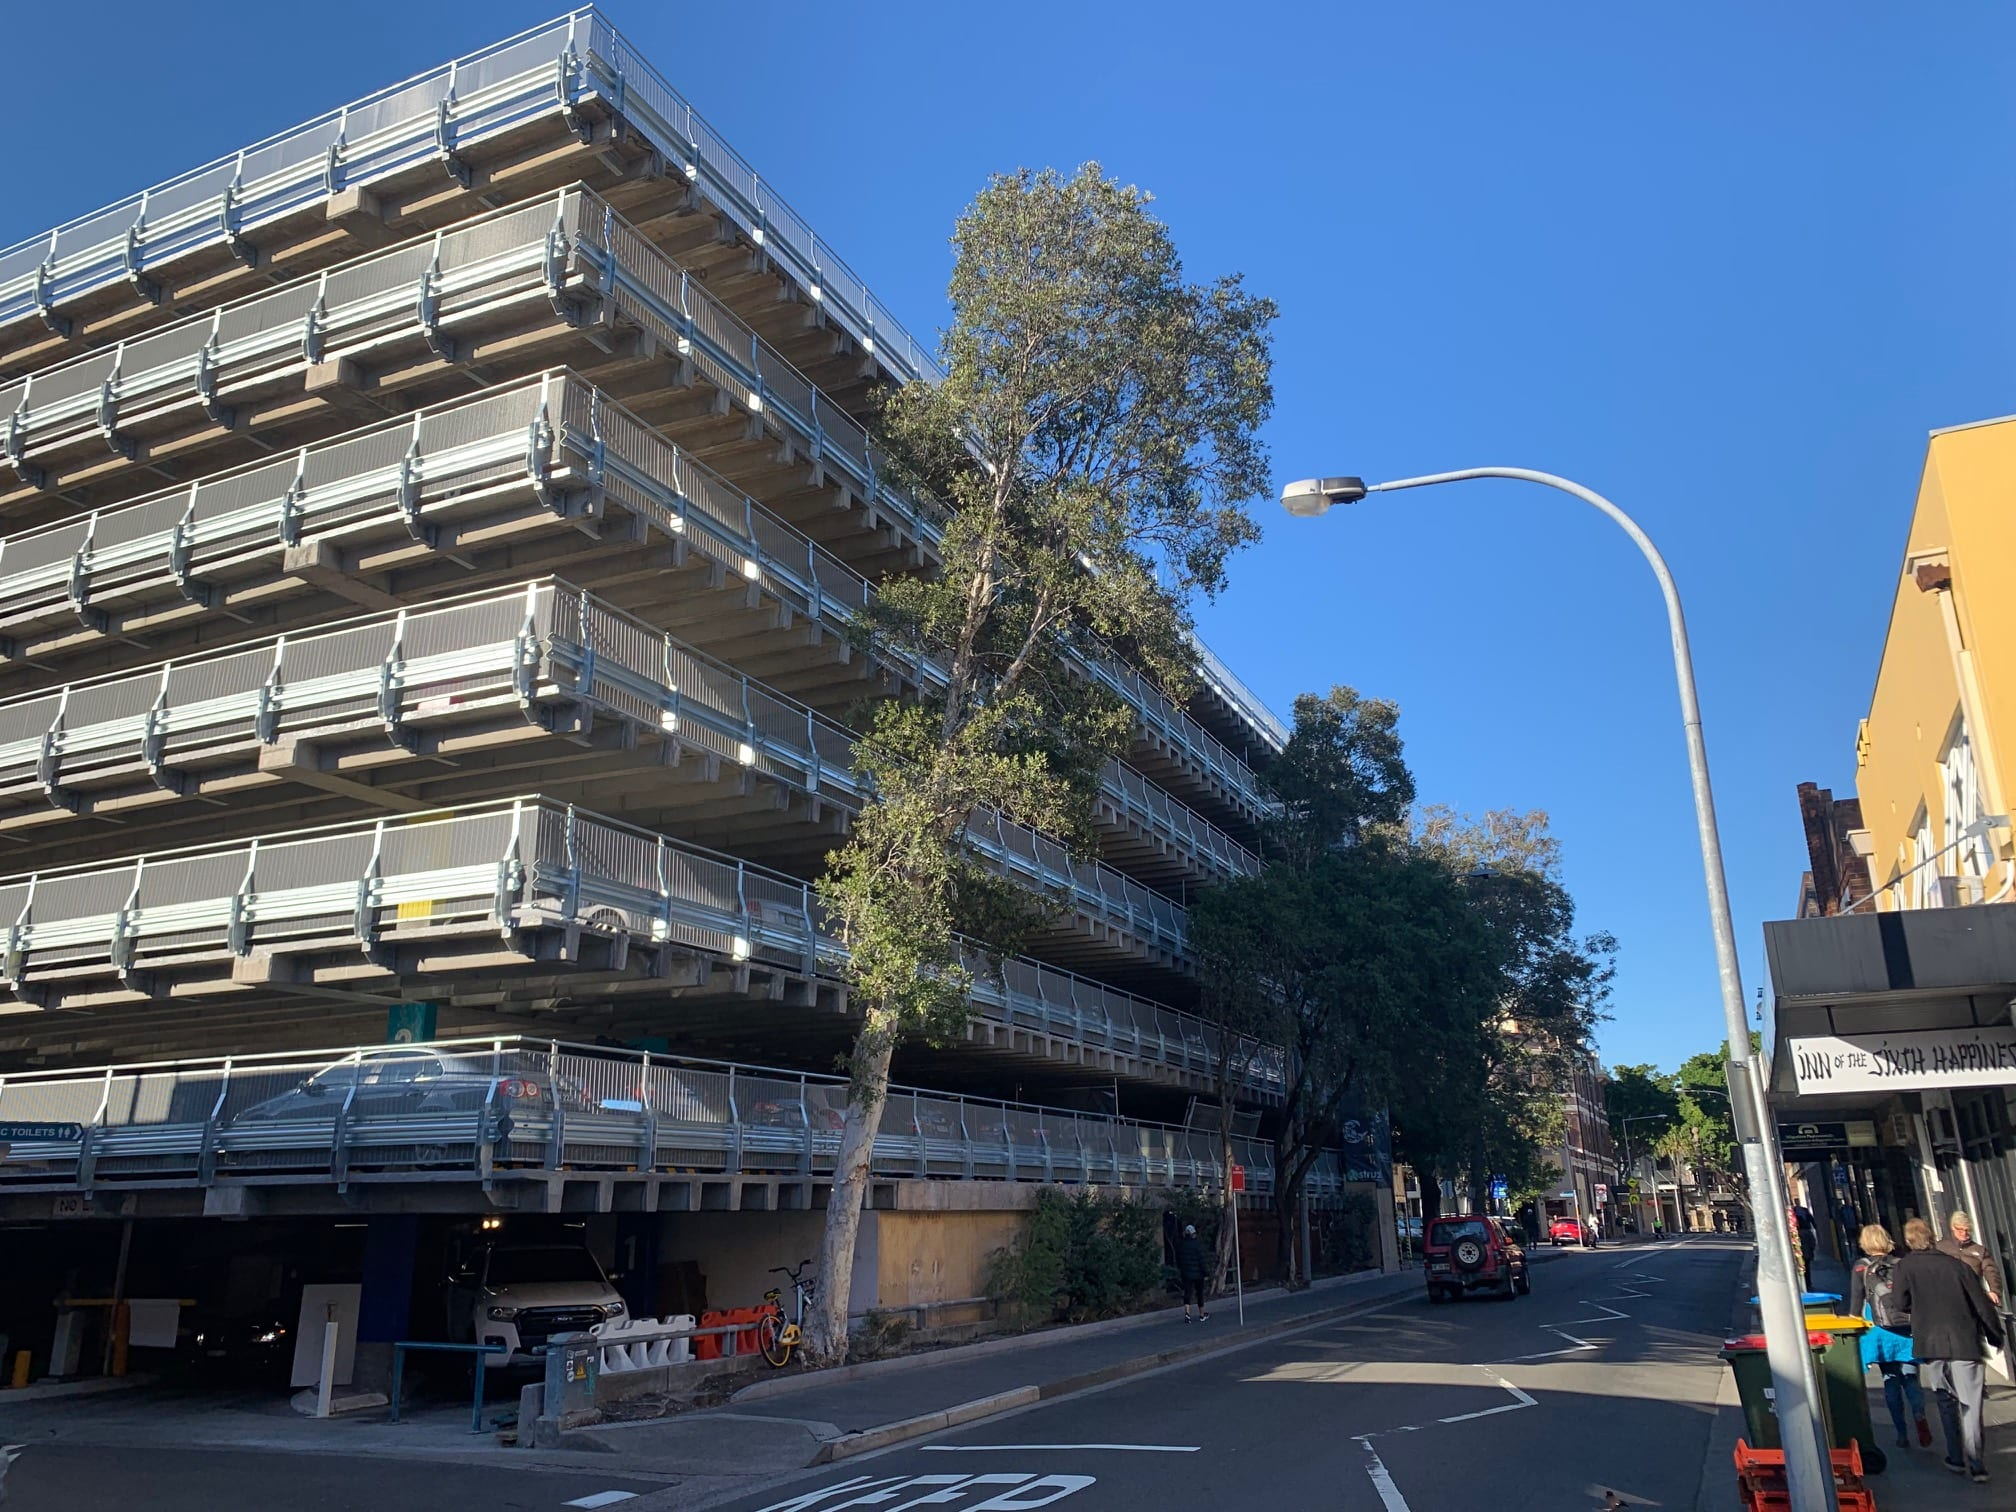 rhino stop barrier systems upgrade at manly car park